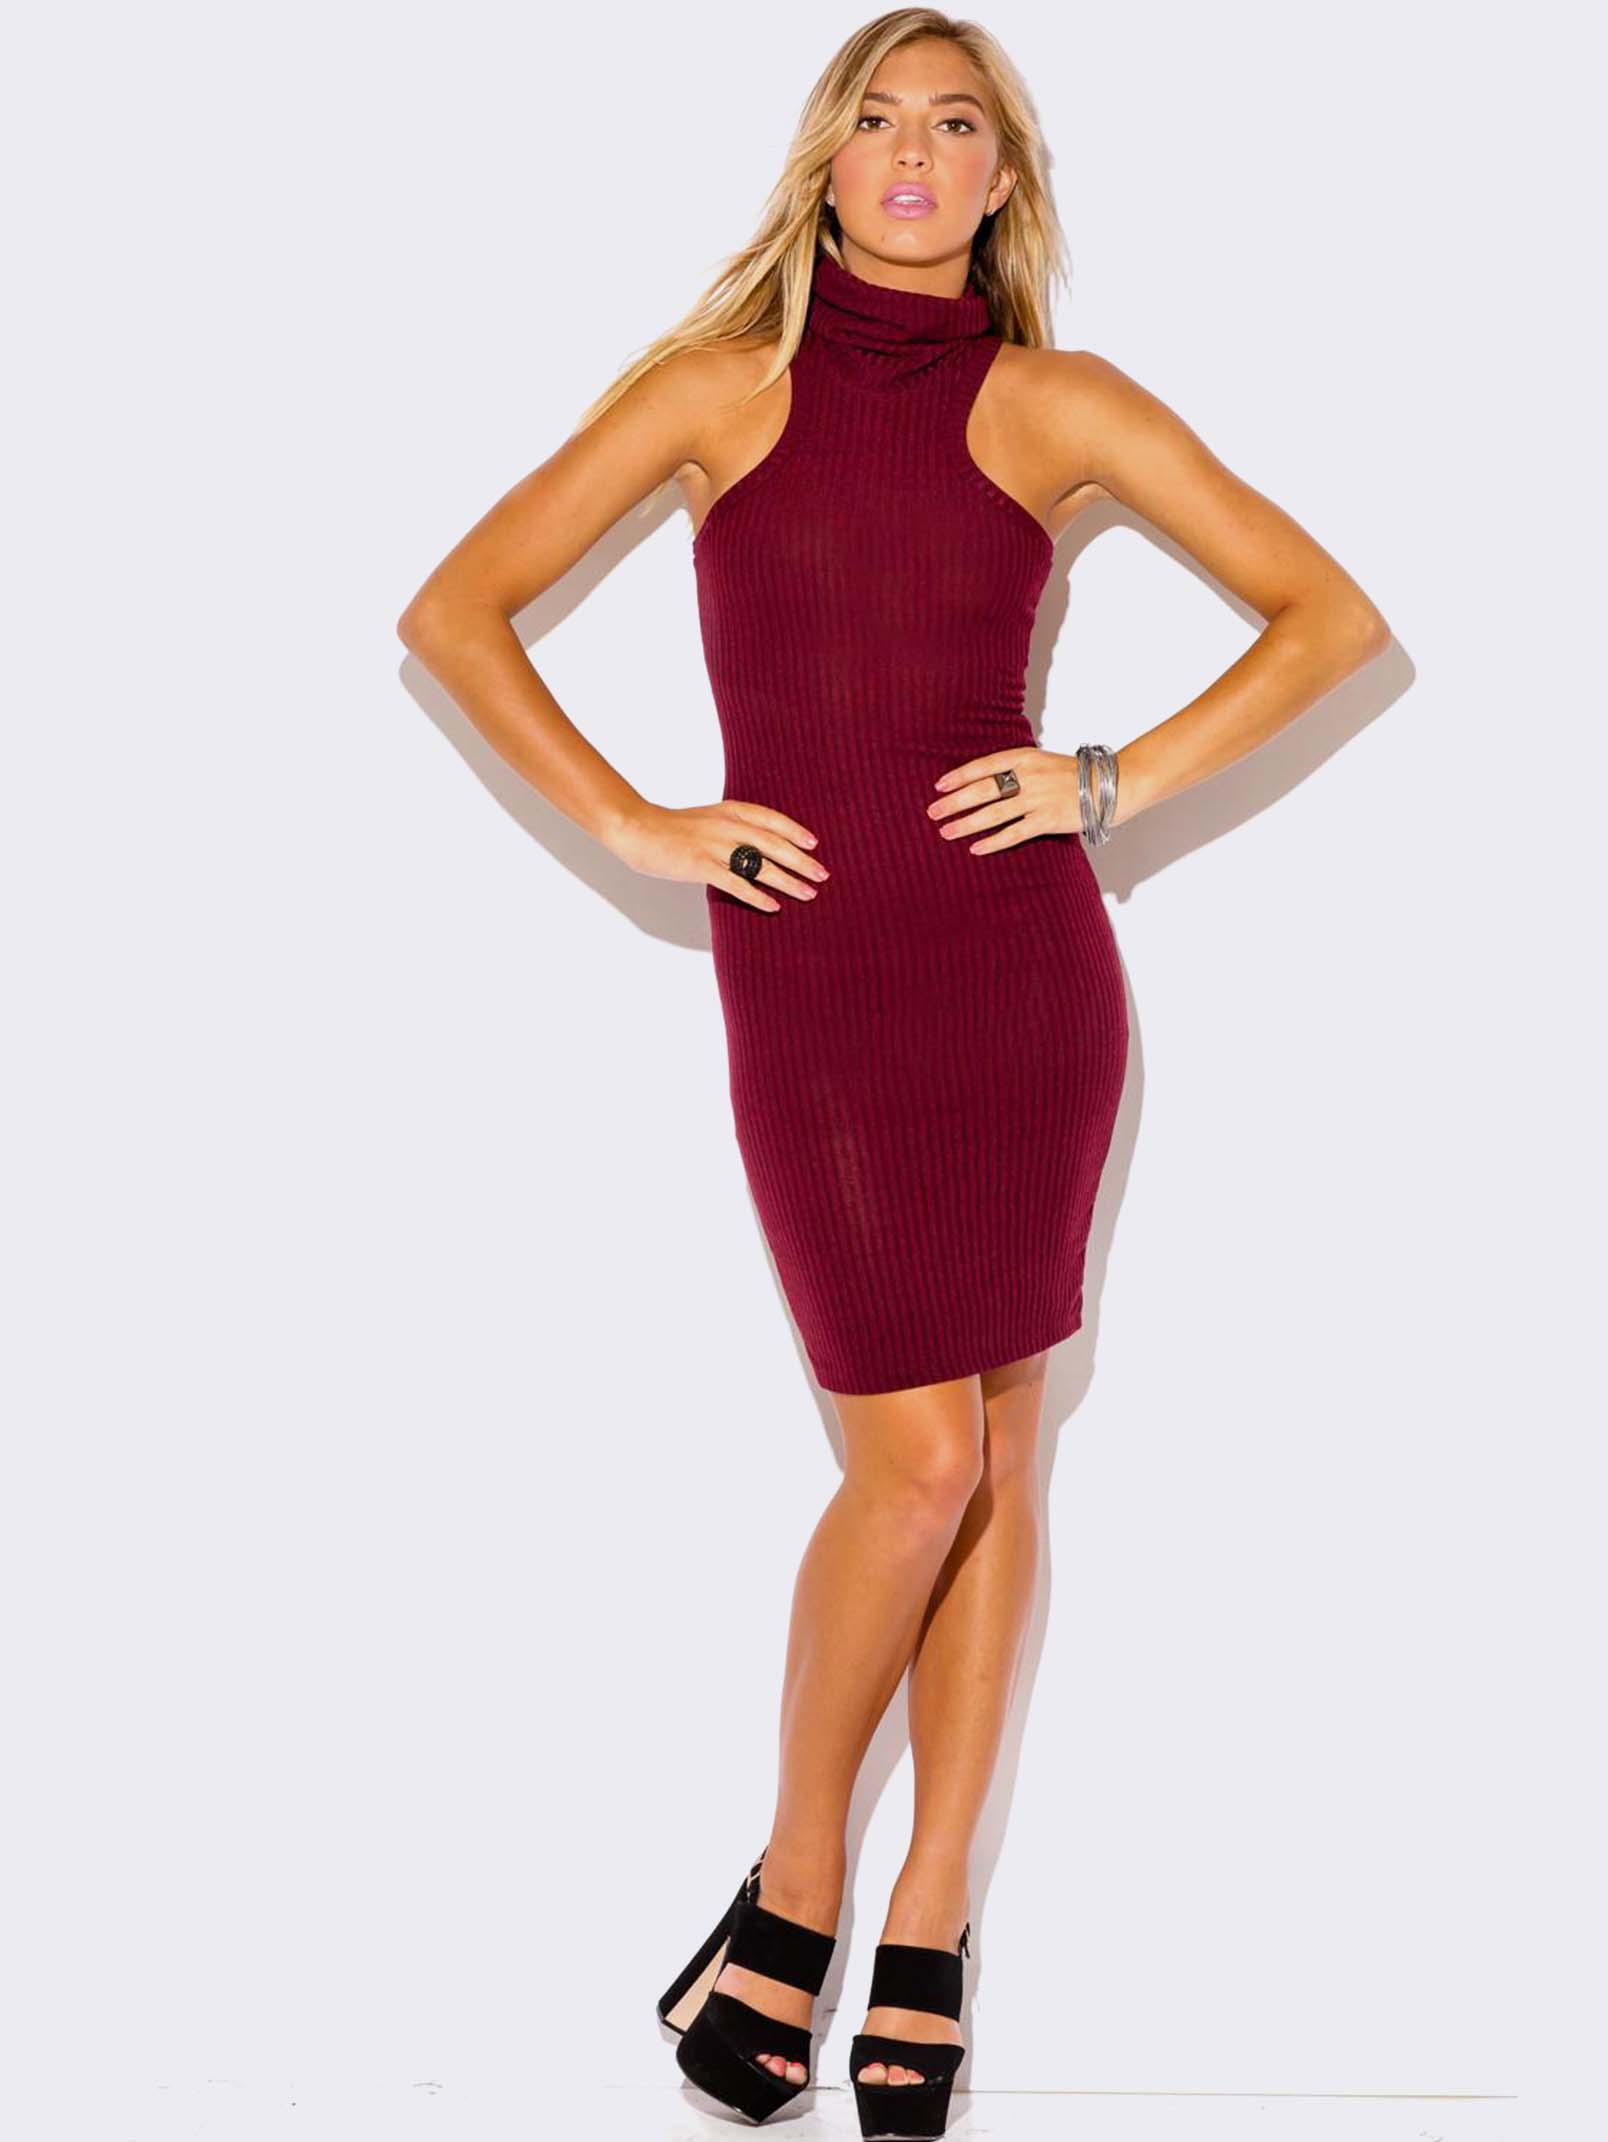 Burgundy Turtleneck Sweater Dress Modishonline Com